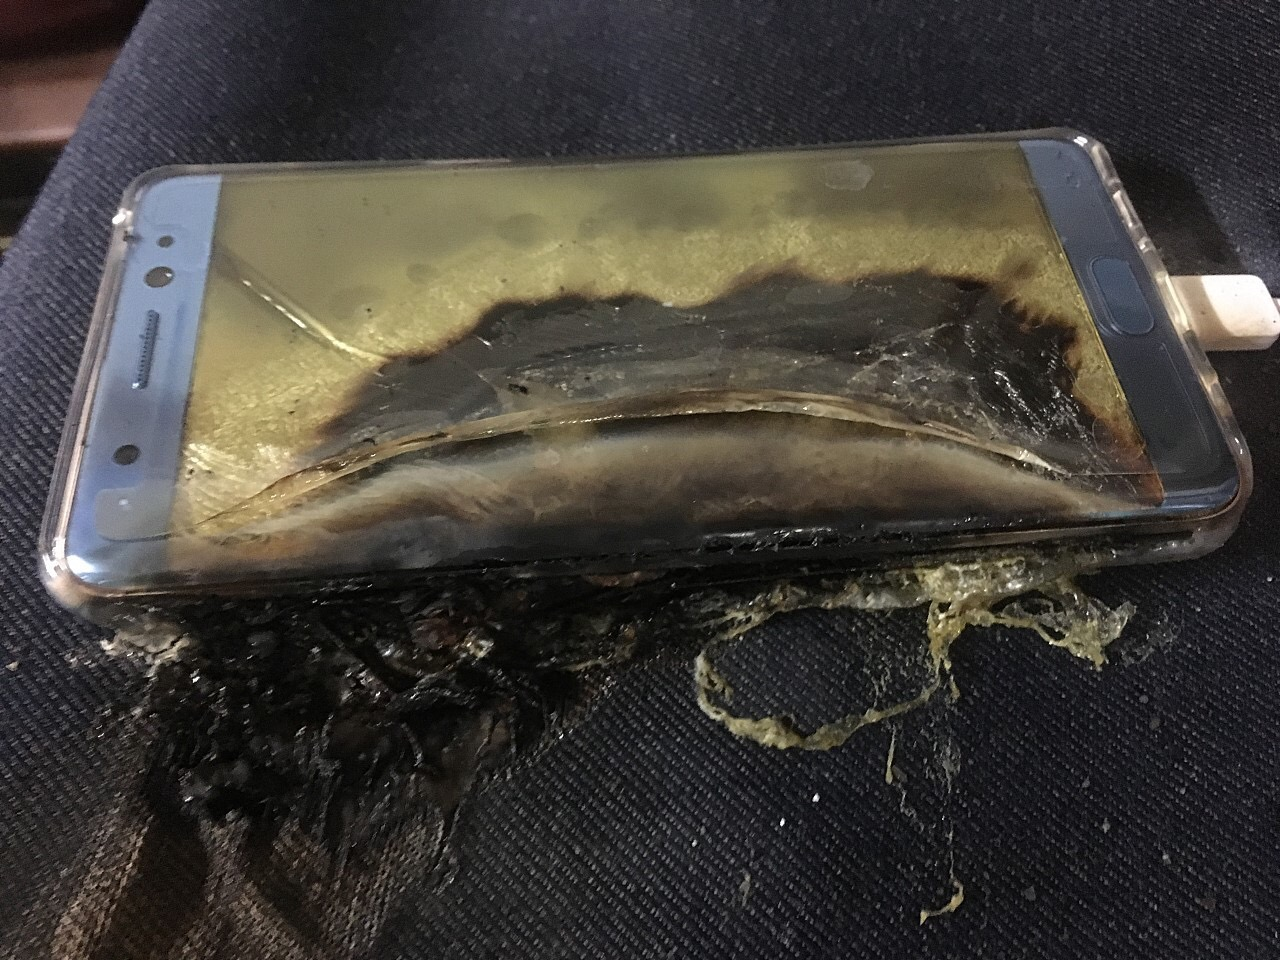 Galaxy Note 7 shipments halted. Handsets pulled from sale